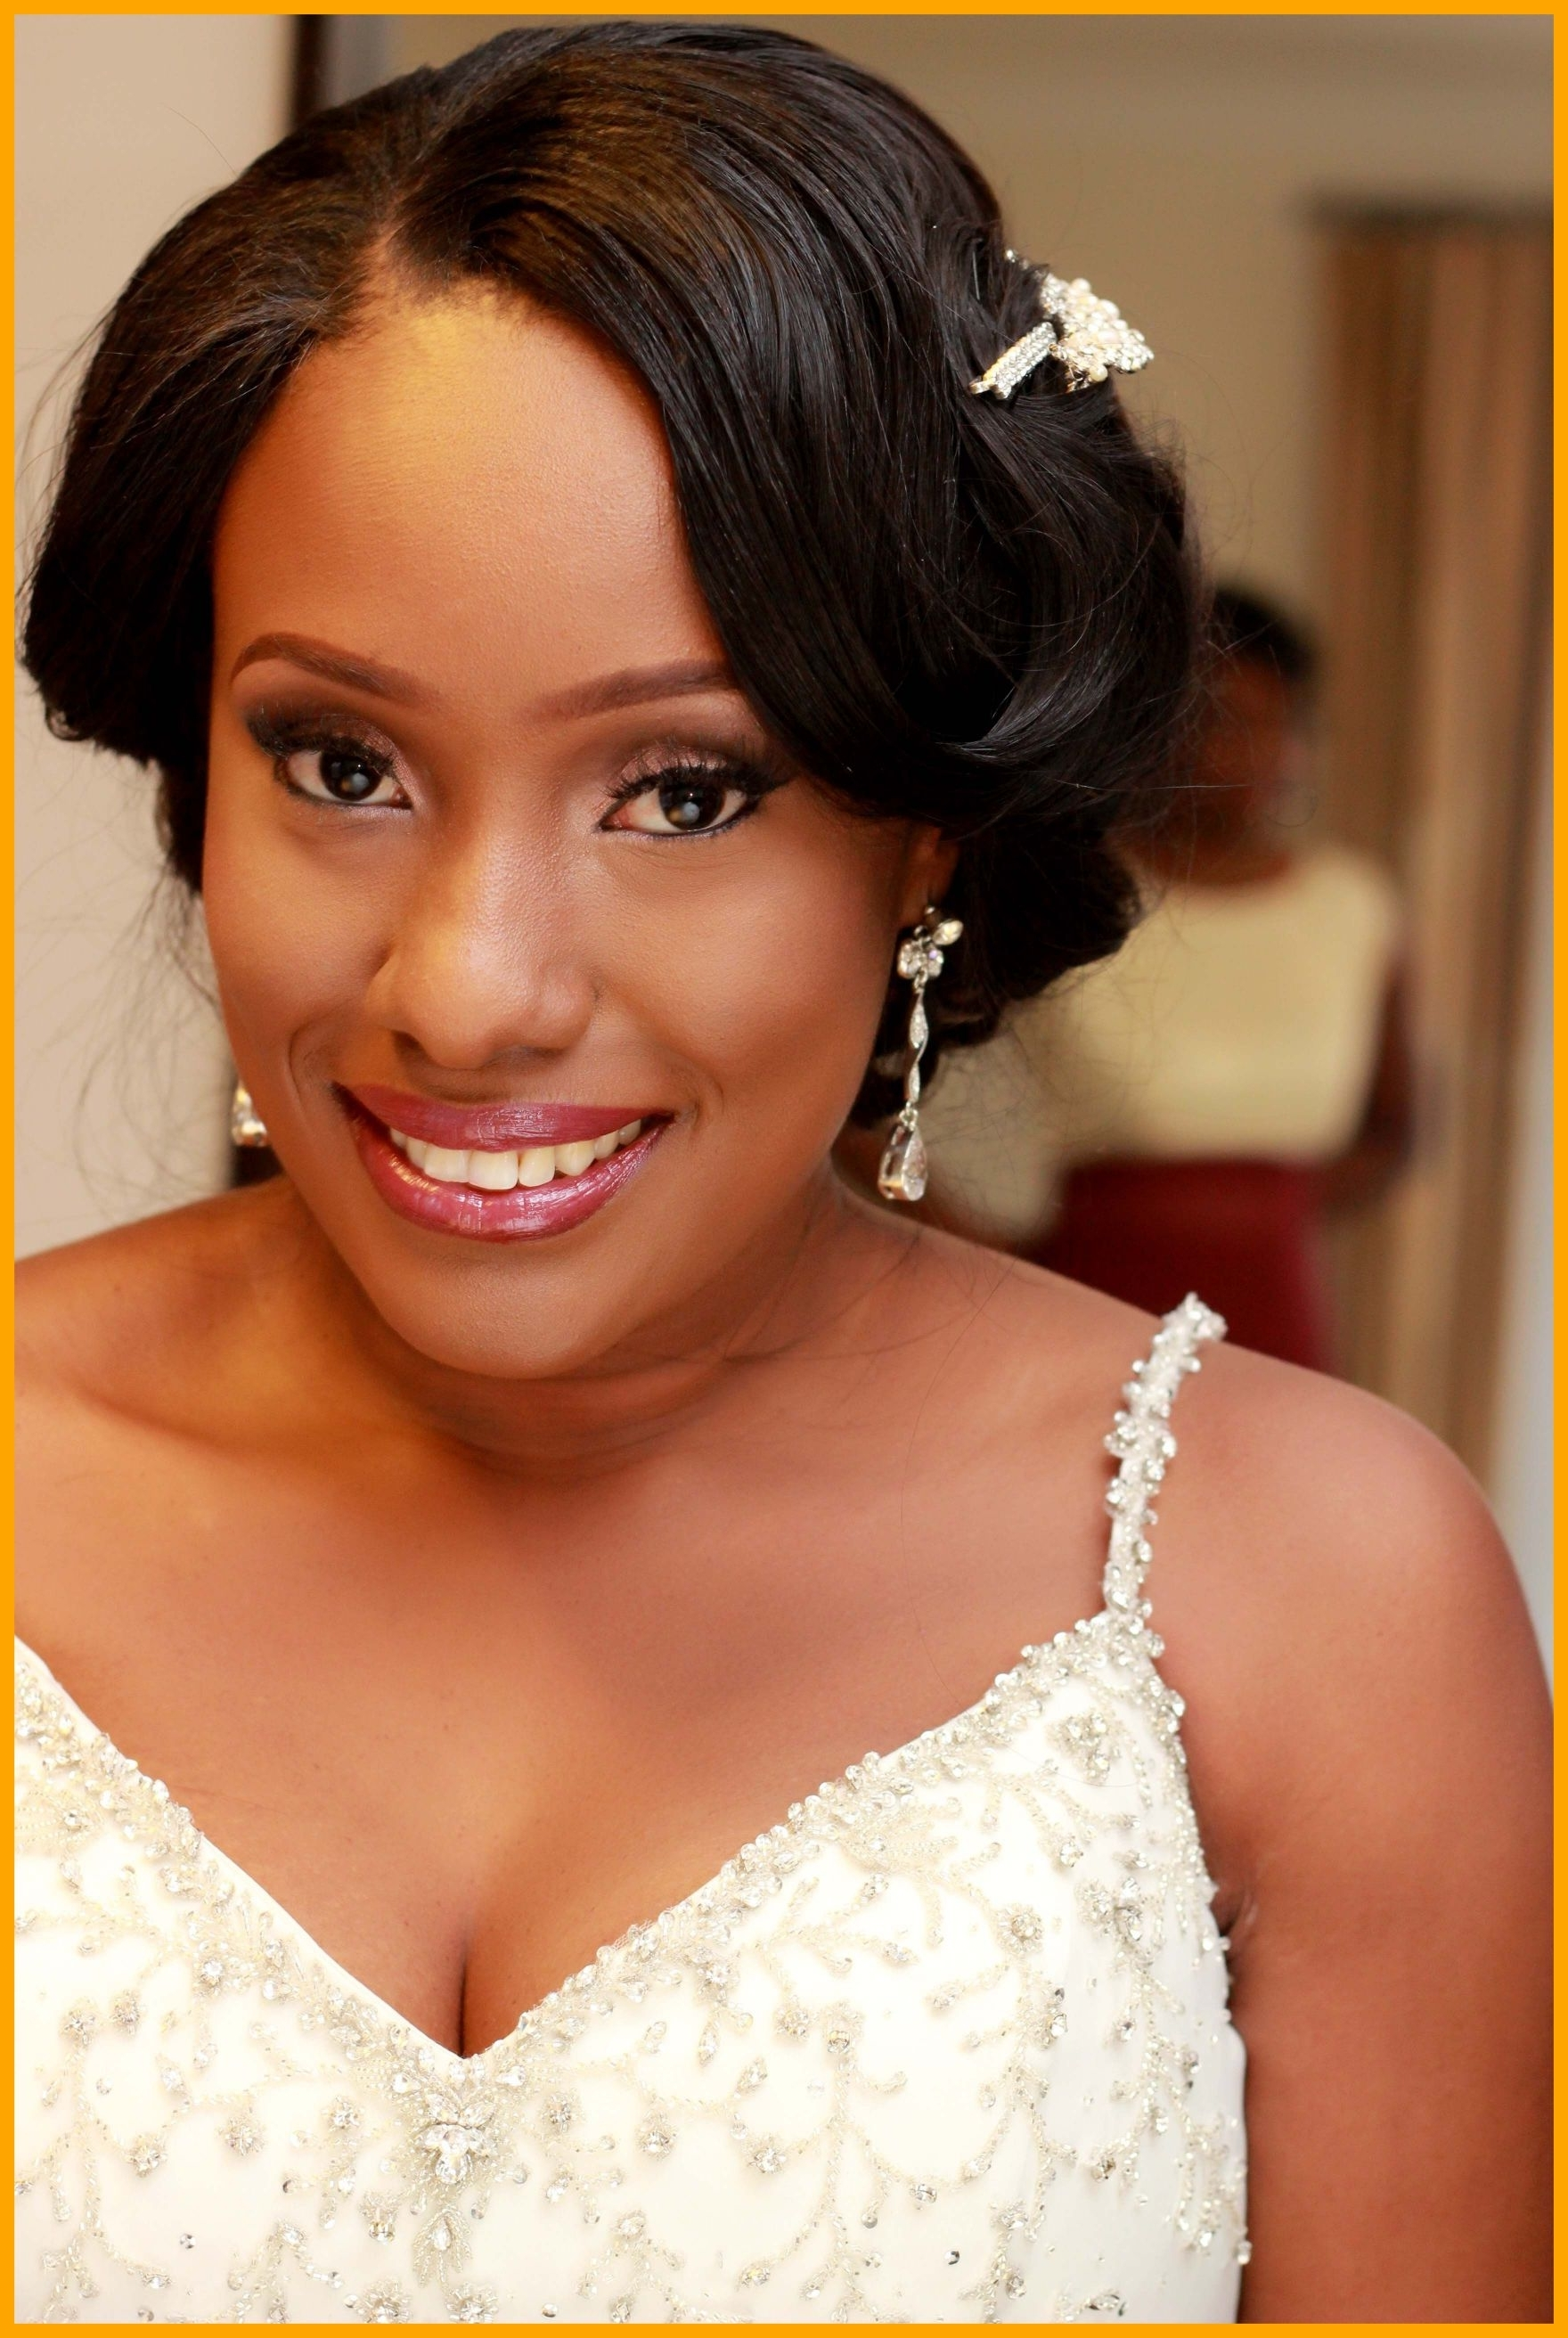 Incredible Wedding Hairstyles For African American Brides About Intended For Most Recently Released Wedding Hairstyles For African American Brides (Gallery 8 of 15)